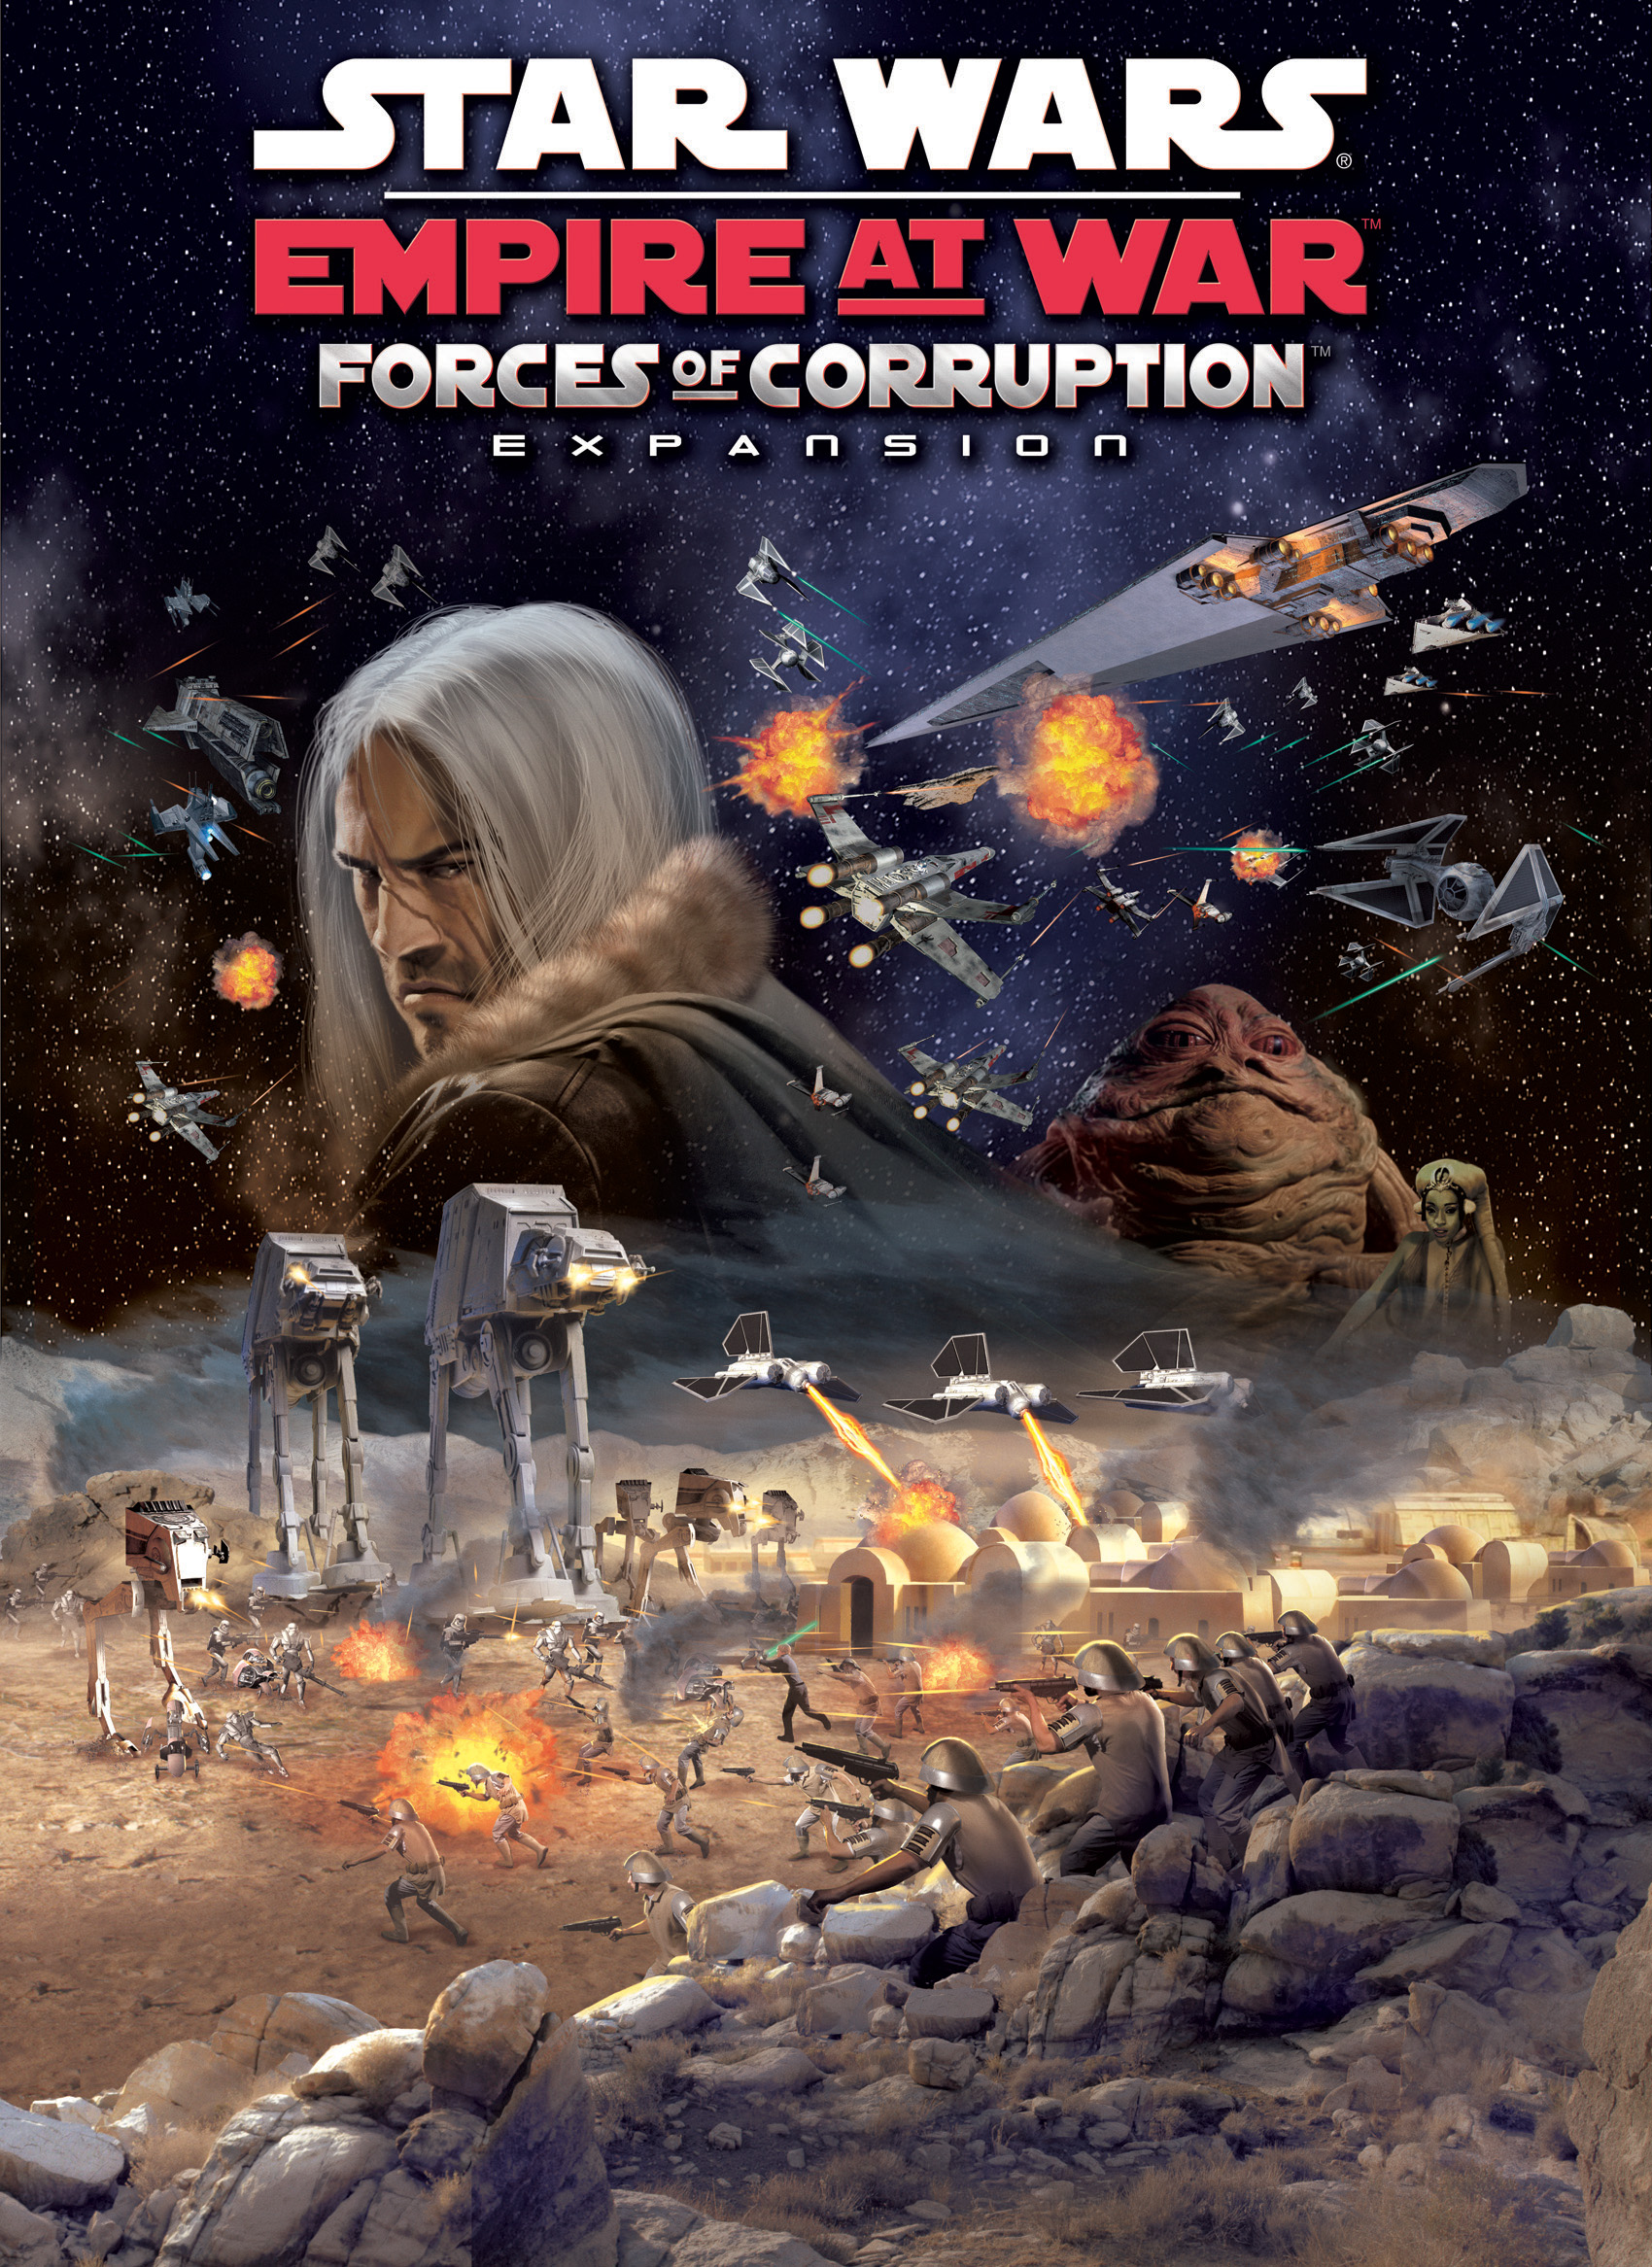 Star Wars Empire at War Force of Corruption